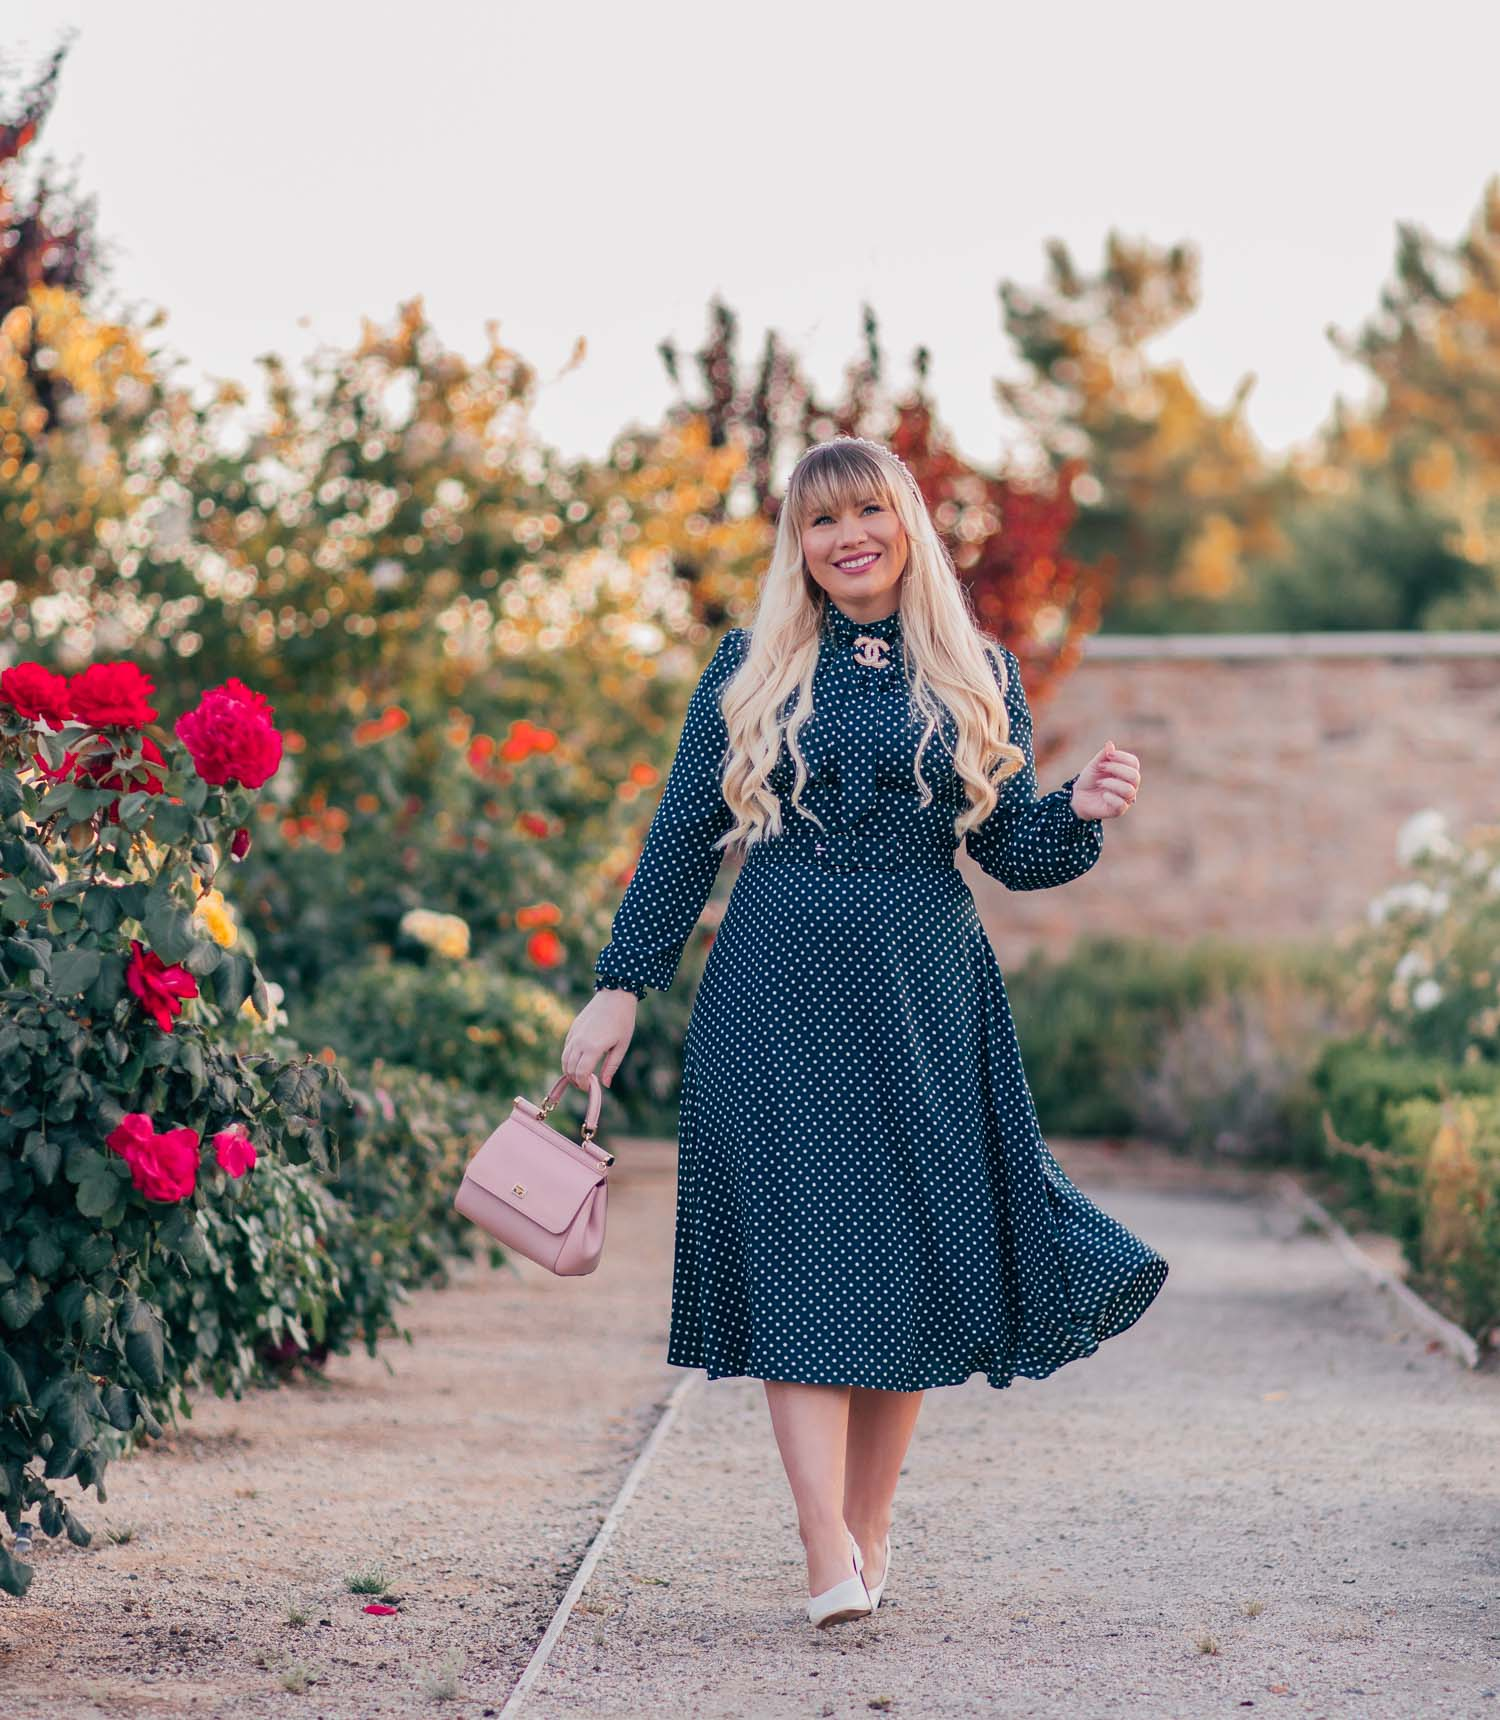 Elizabeth Hugen of Lizzie in Lace shares a vintage inspired green polka dot dress